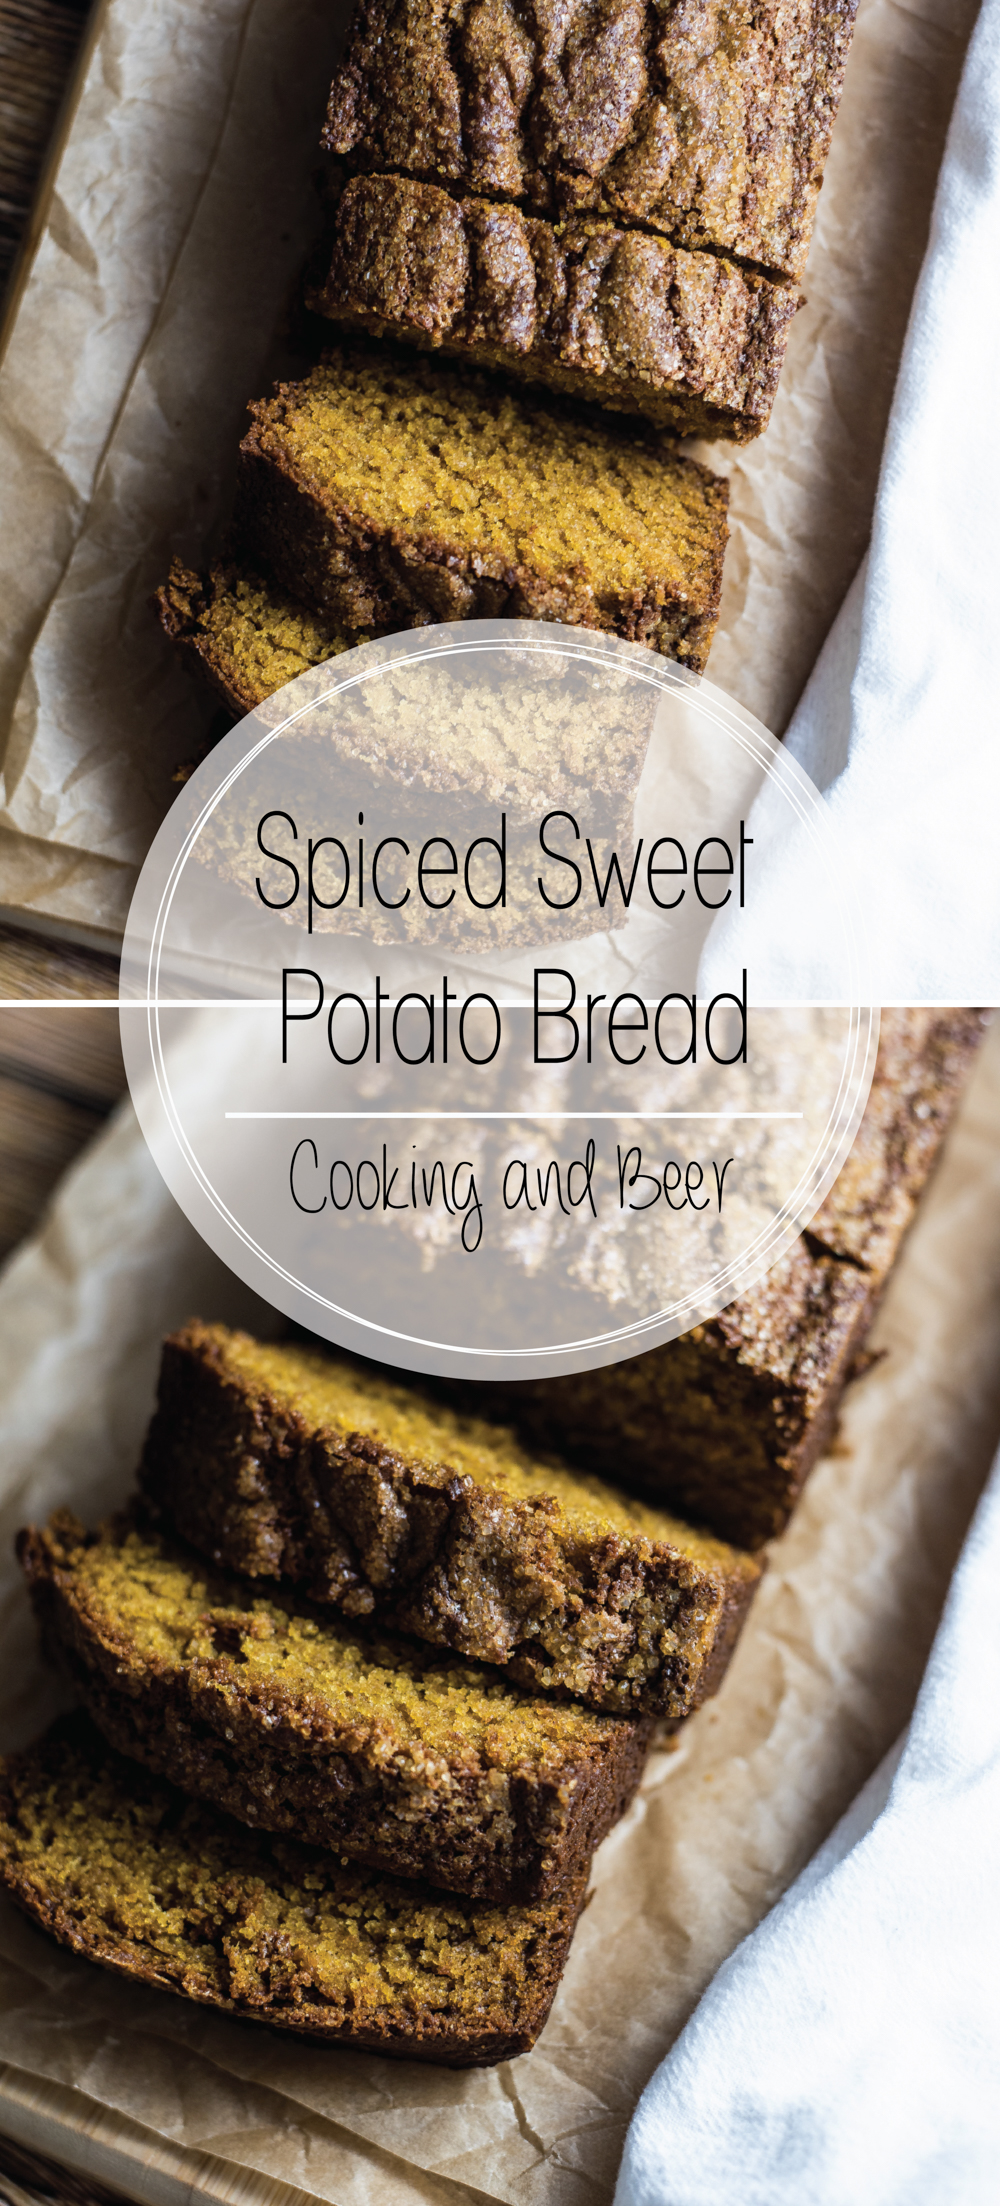 This spiced sweet potato bread is the perfect breakfast or dessert recipe. Pair it with a cup of coffee, a glass of milk, or the perfect pumpkin ale!